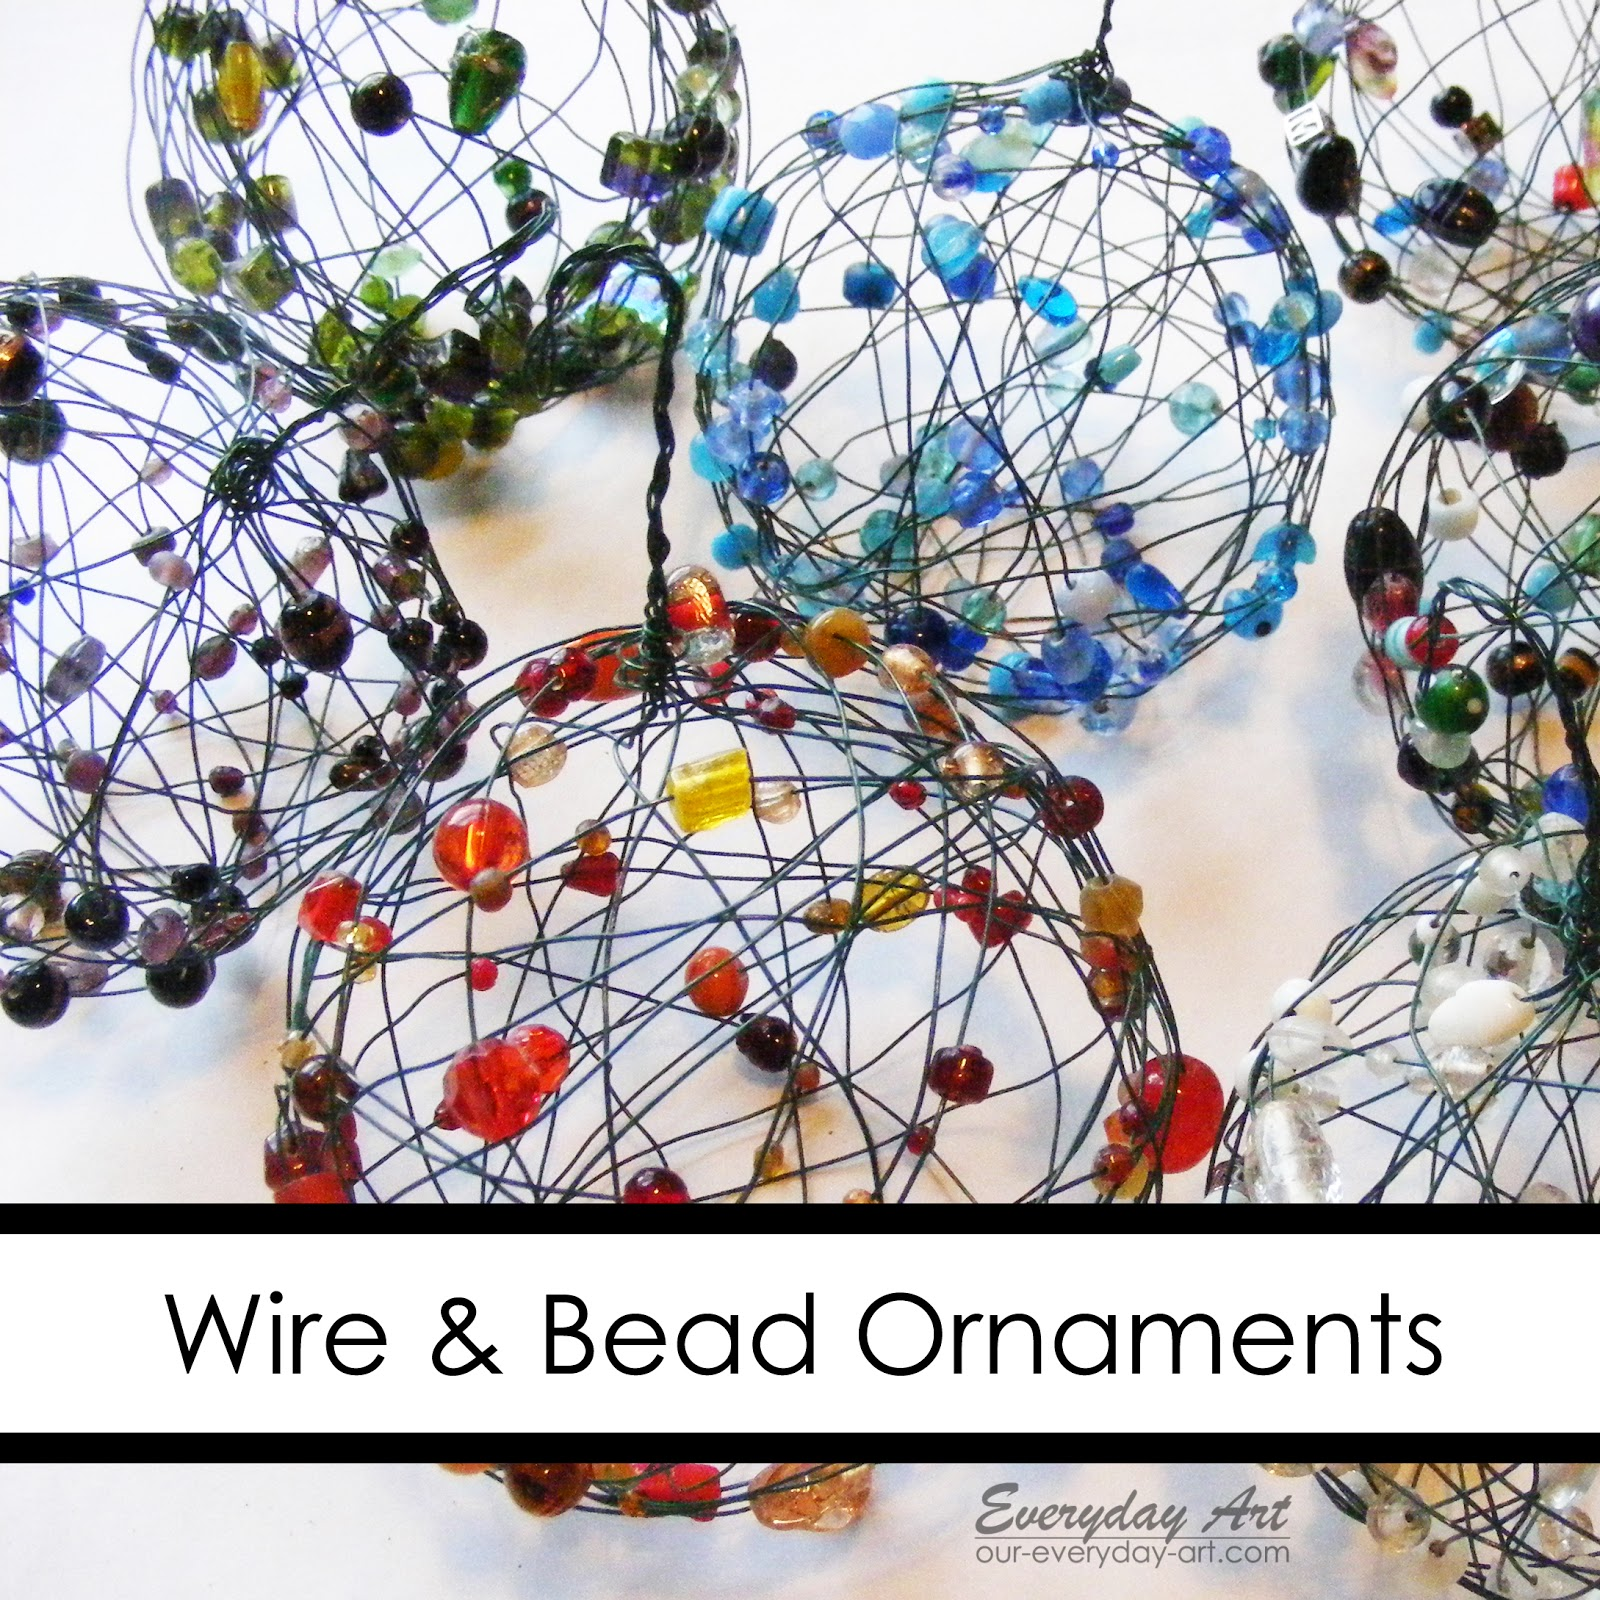 Decorate Christmas Tree With Beads: Everyday Art: Wire And Bead Ornaments